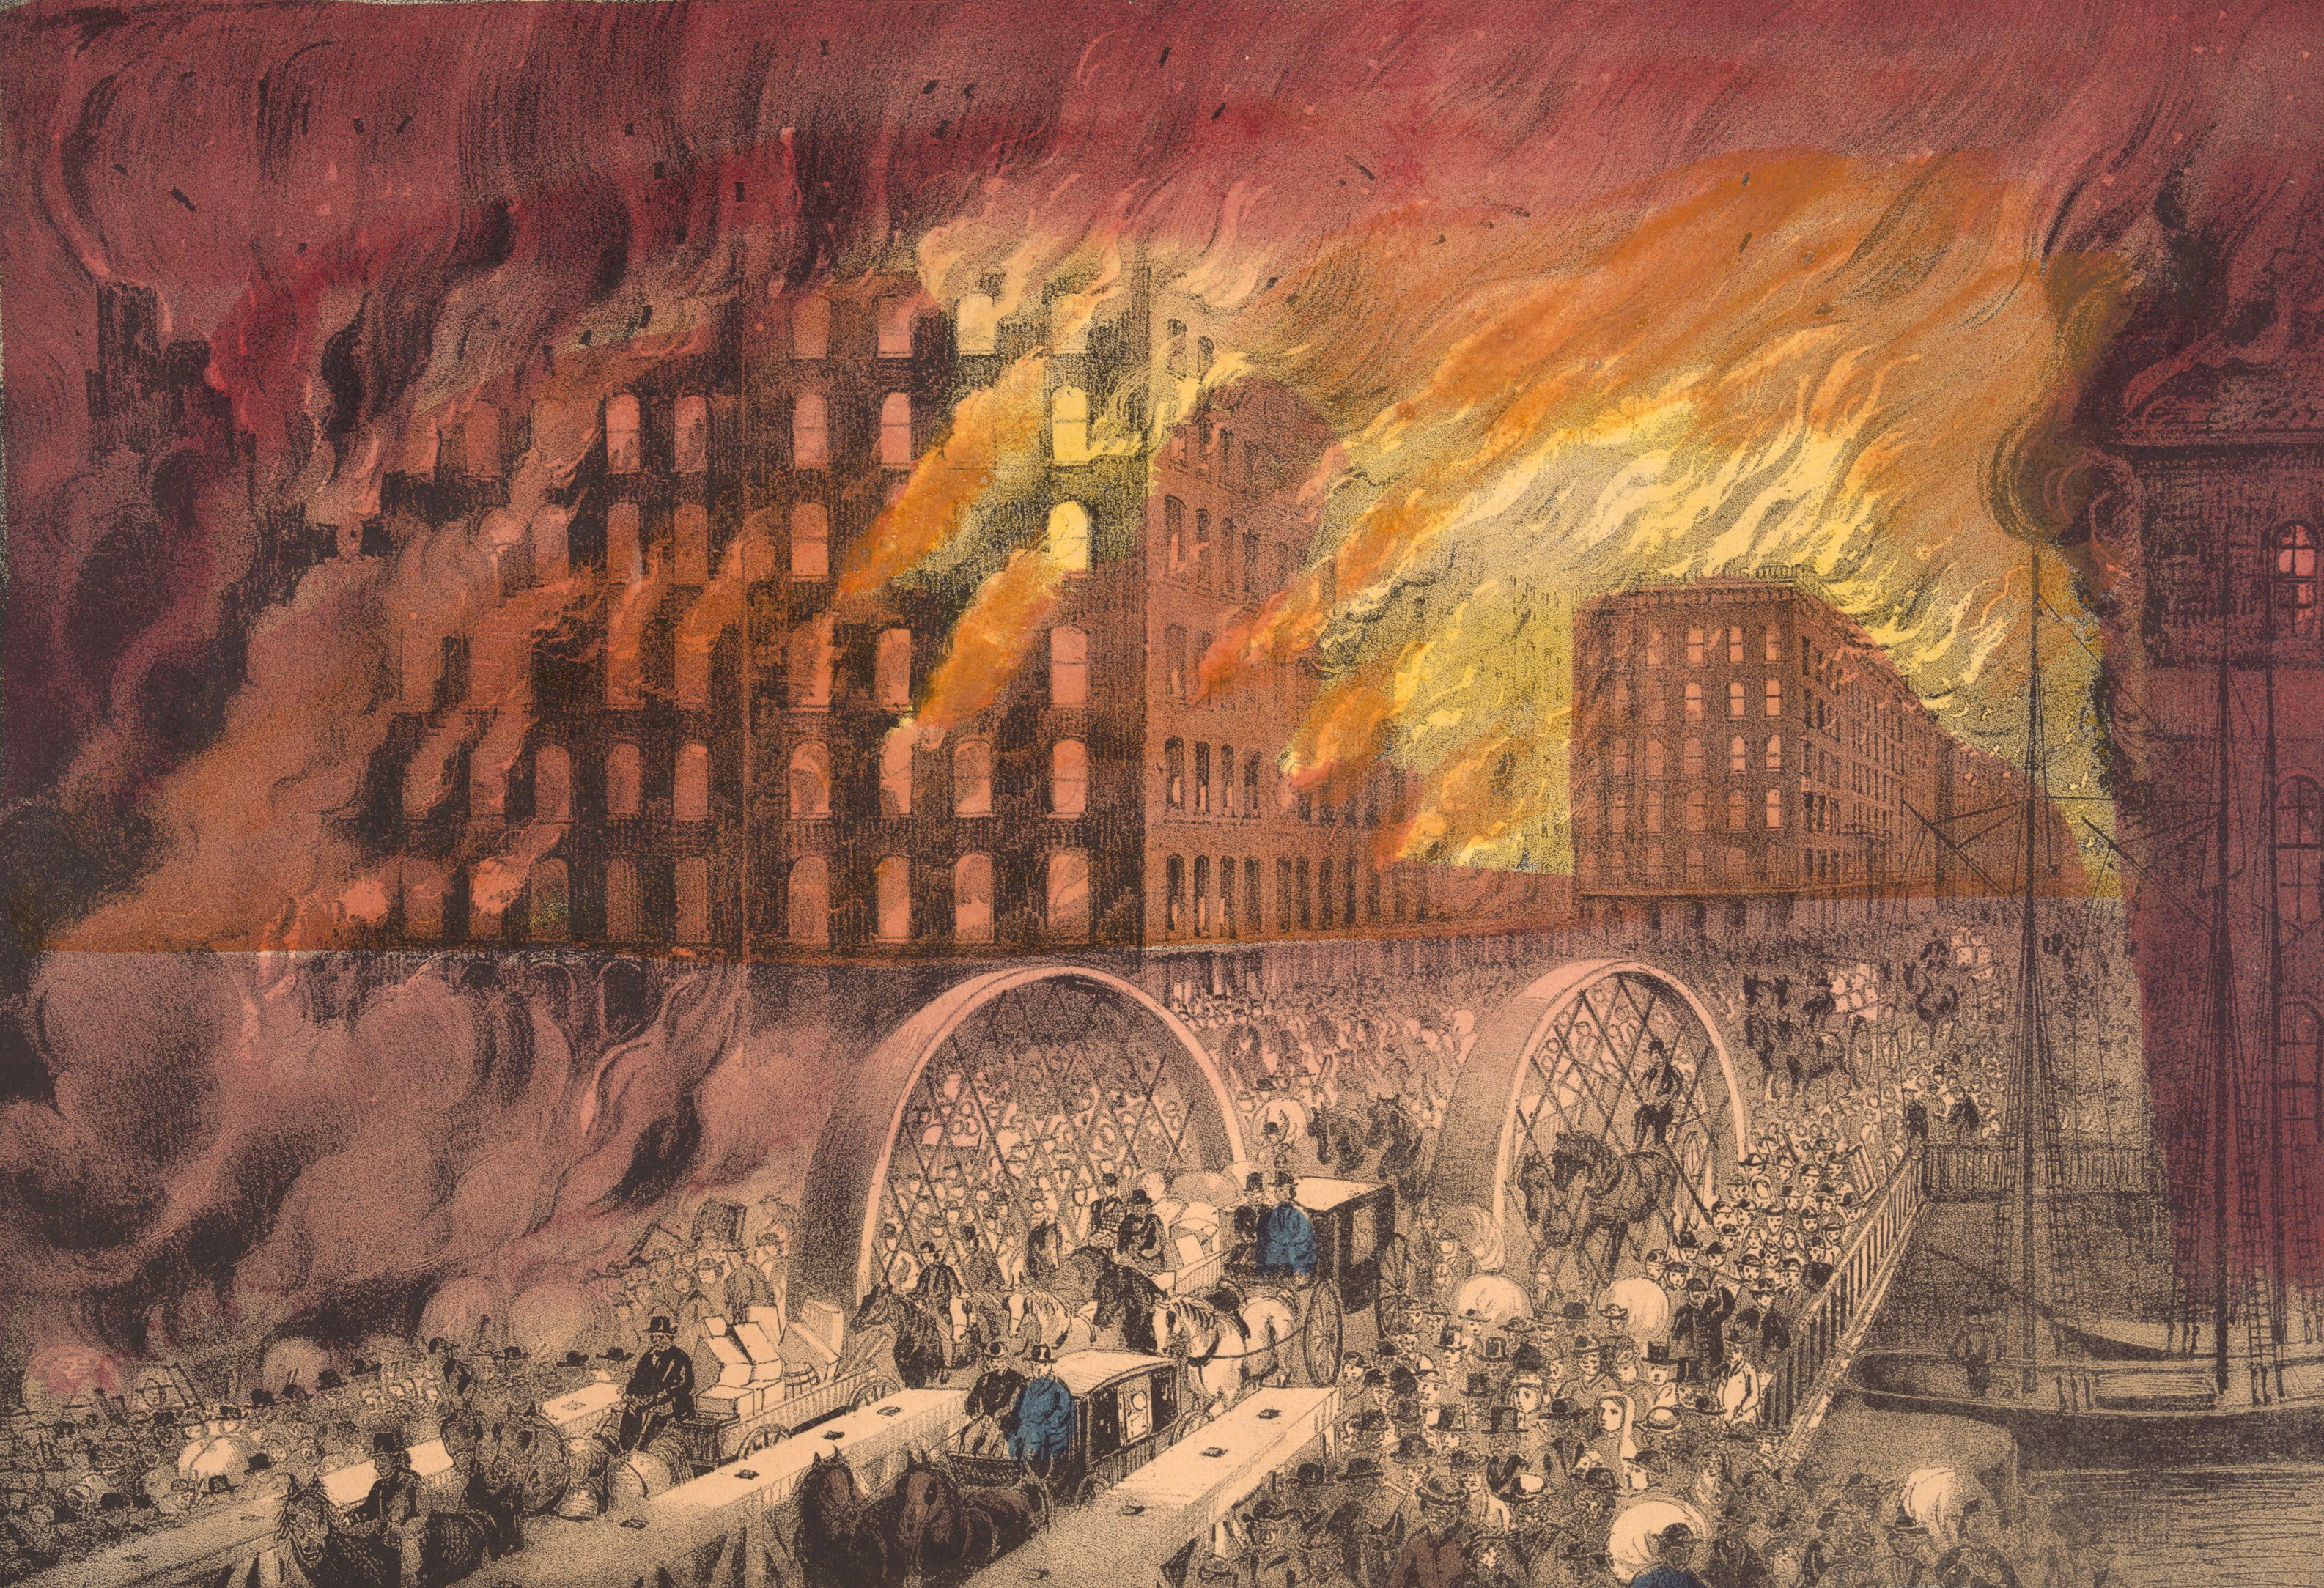 the consequences of the great chicago fire of 1871 In 1871, the most famous fire in american history swept across chicago and destroyed much of the city according to legend, the great chicago fire was started when a cow owned by an irish immigrant named mrs o'leary kicked over a lantern in the.